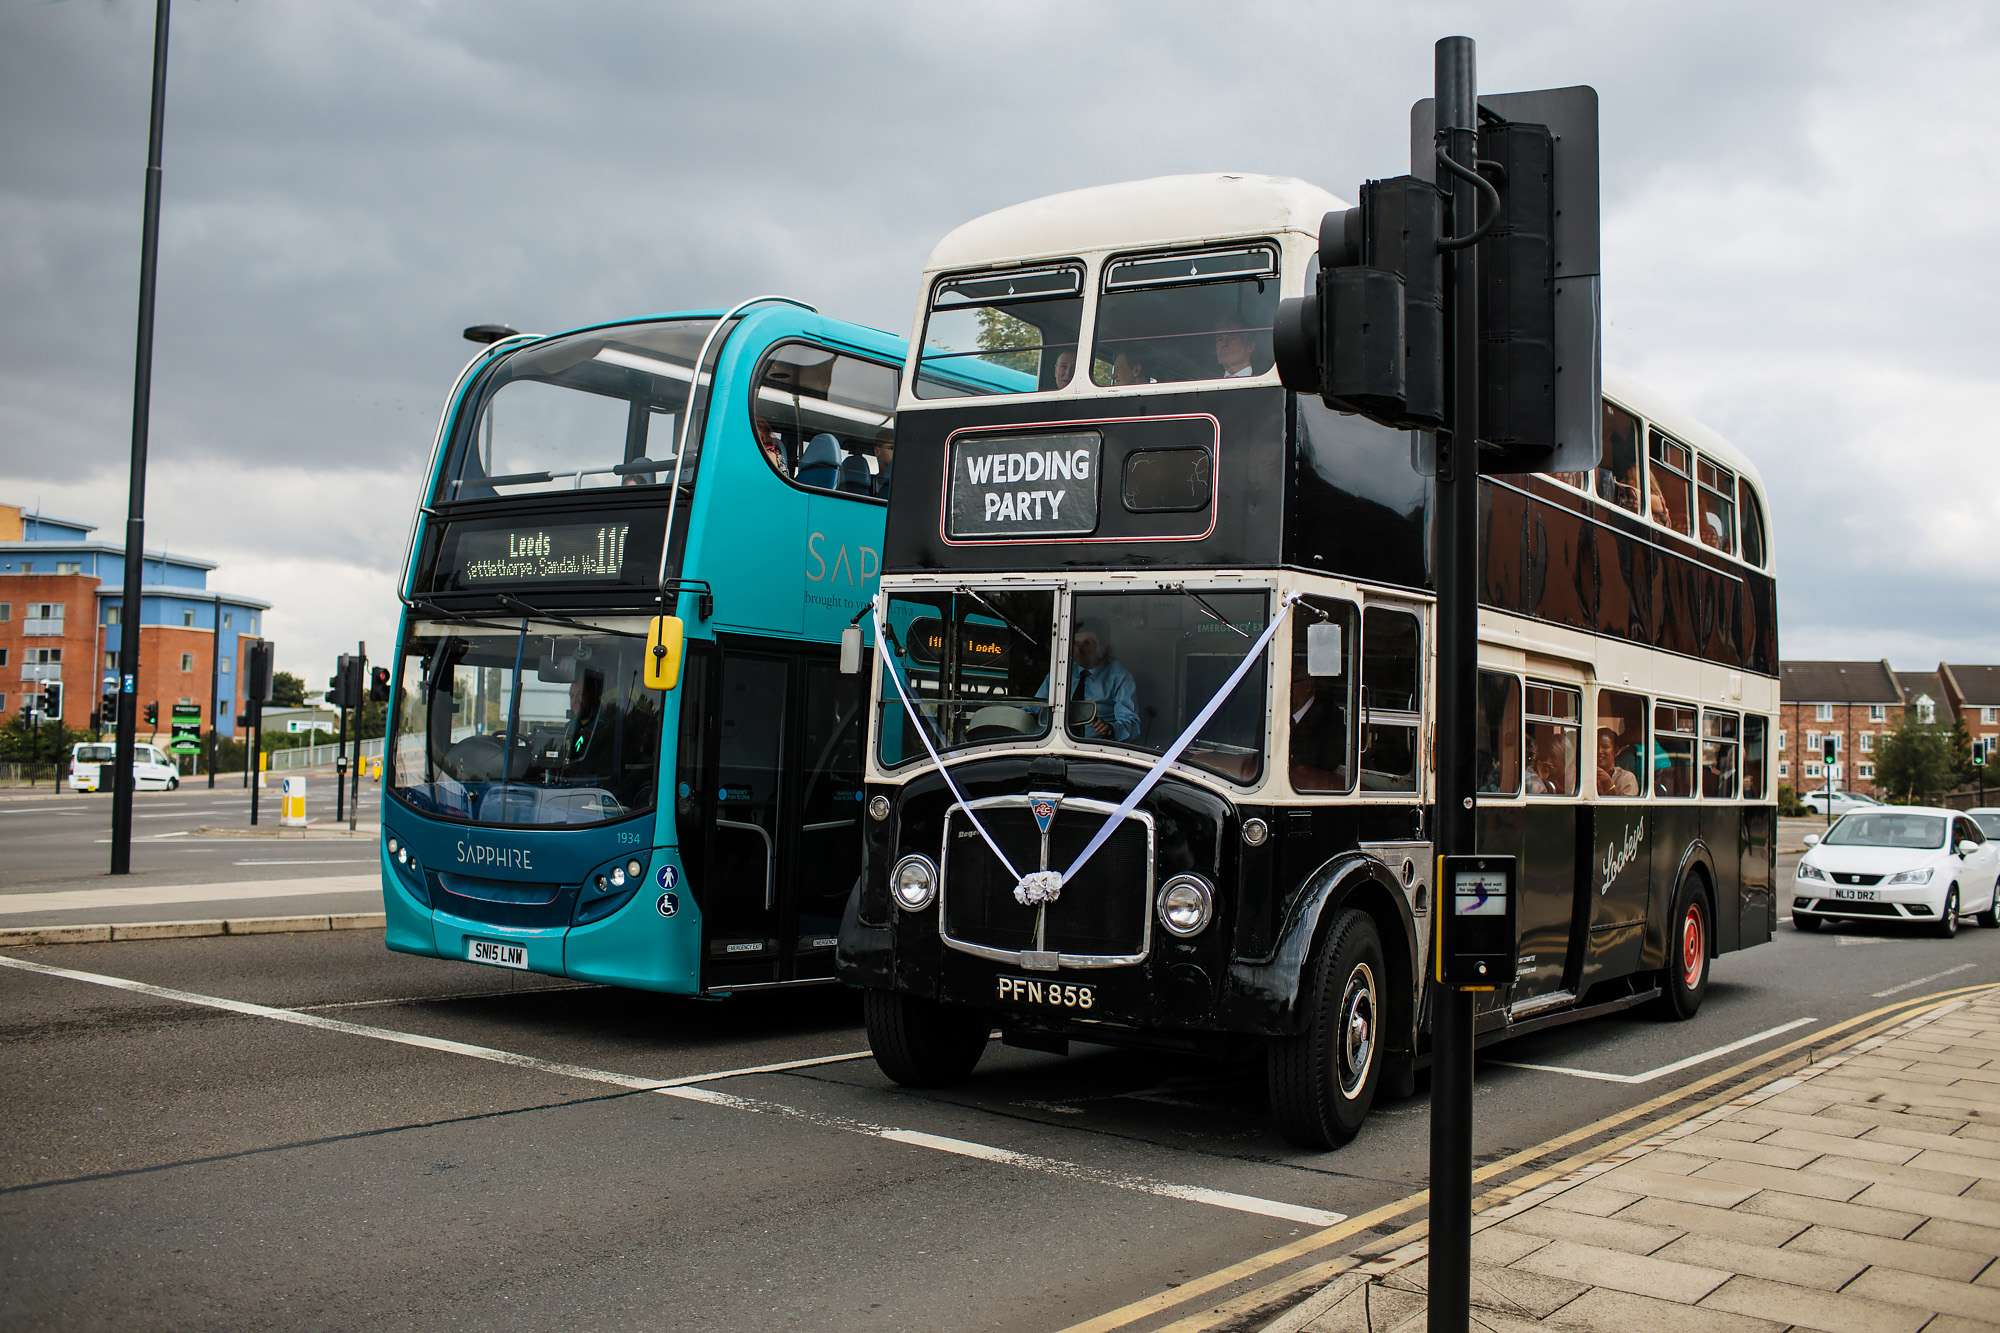 Vintage bus at a wedding in Wakefield